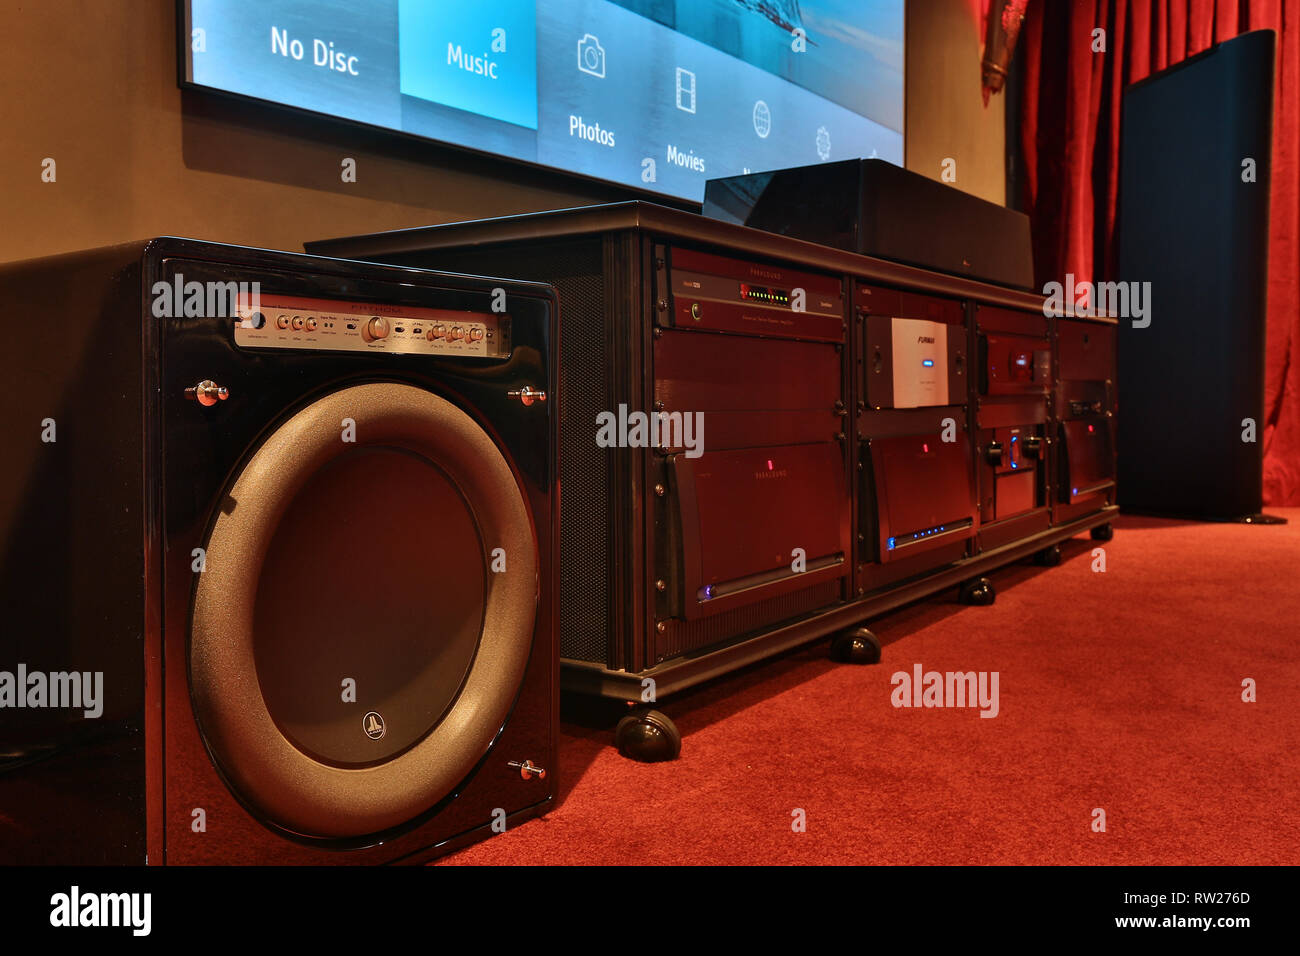 hight resolution of miami beach fl february 28 home theater featuring vutec silver star screen parasound amps